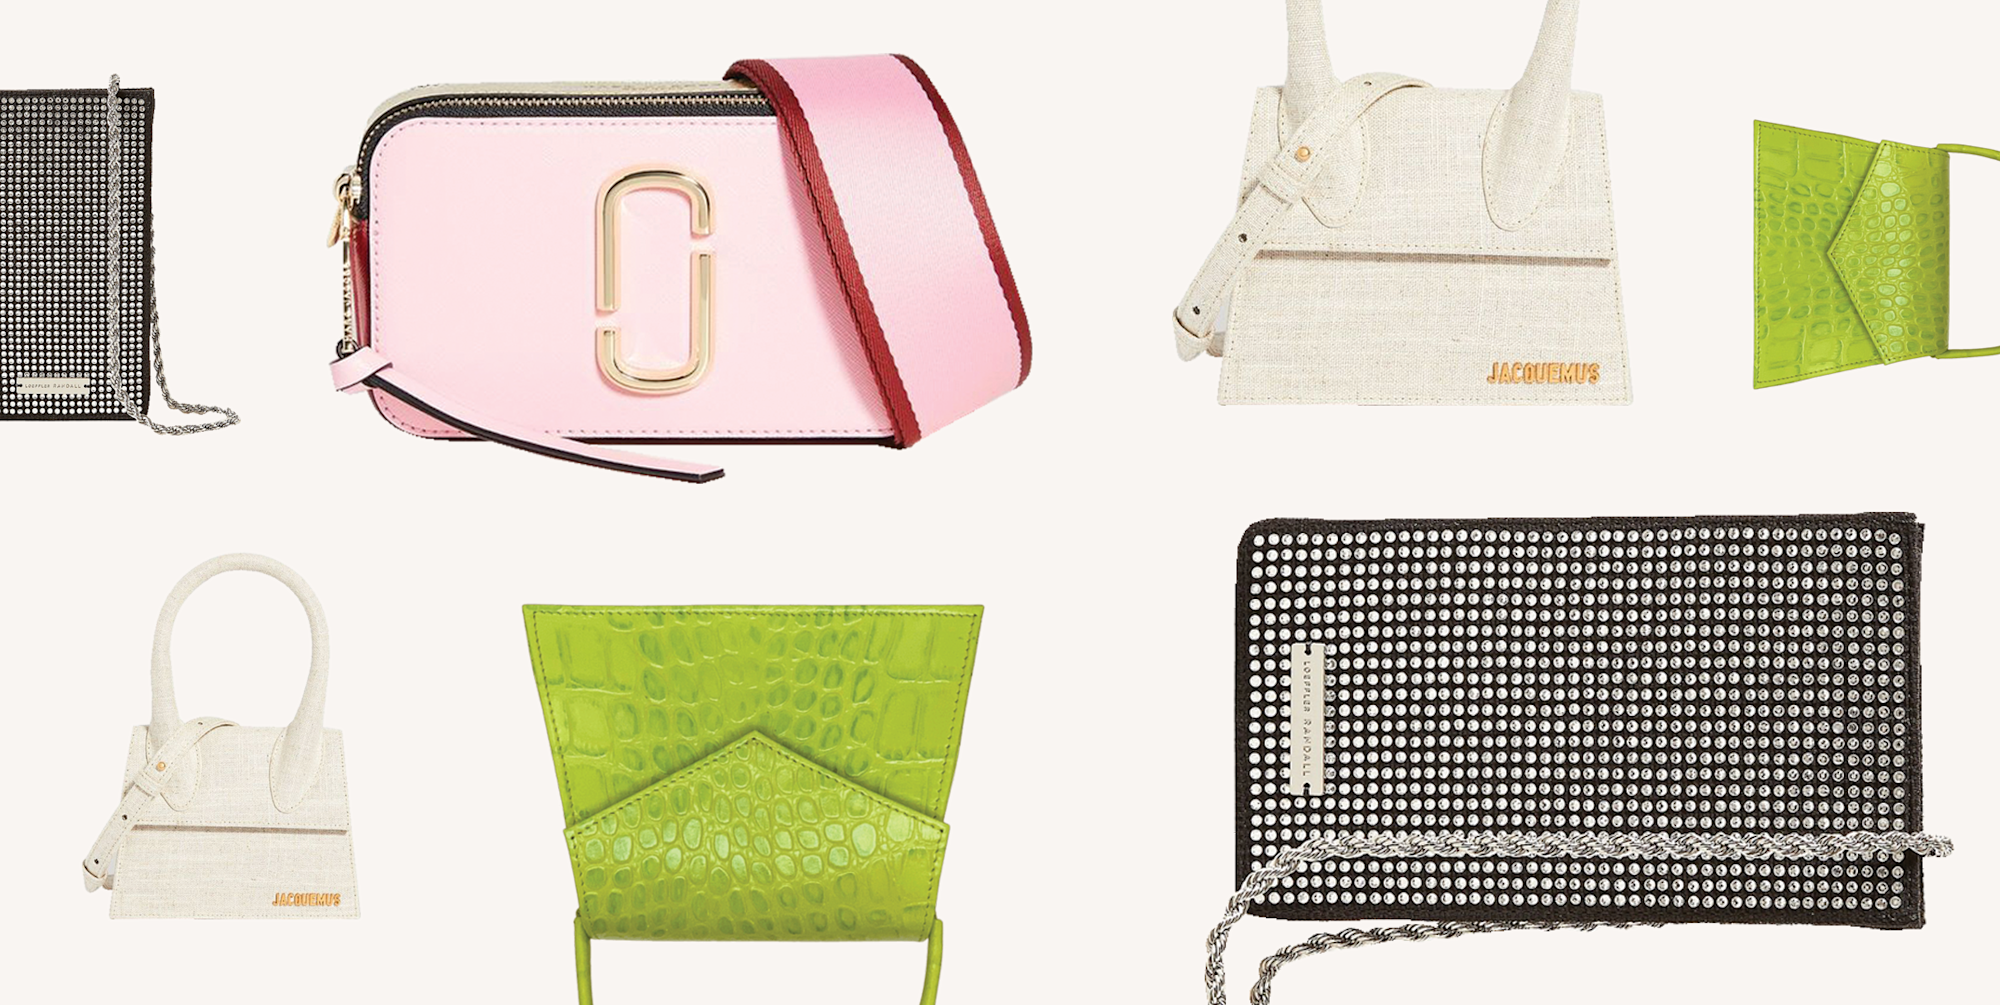 Finally Cute Crossbody Bags That Are Both Practical And Stylish